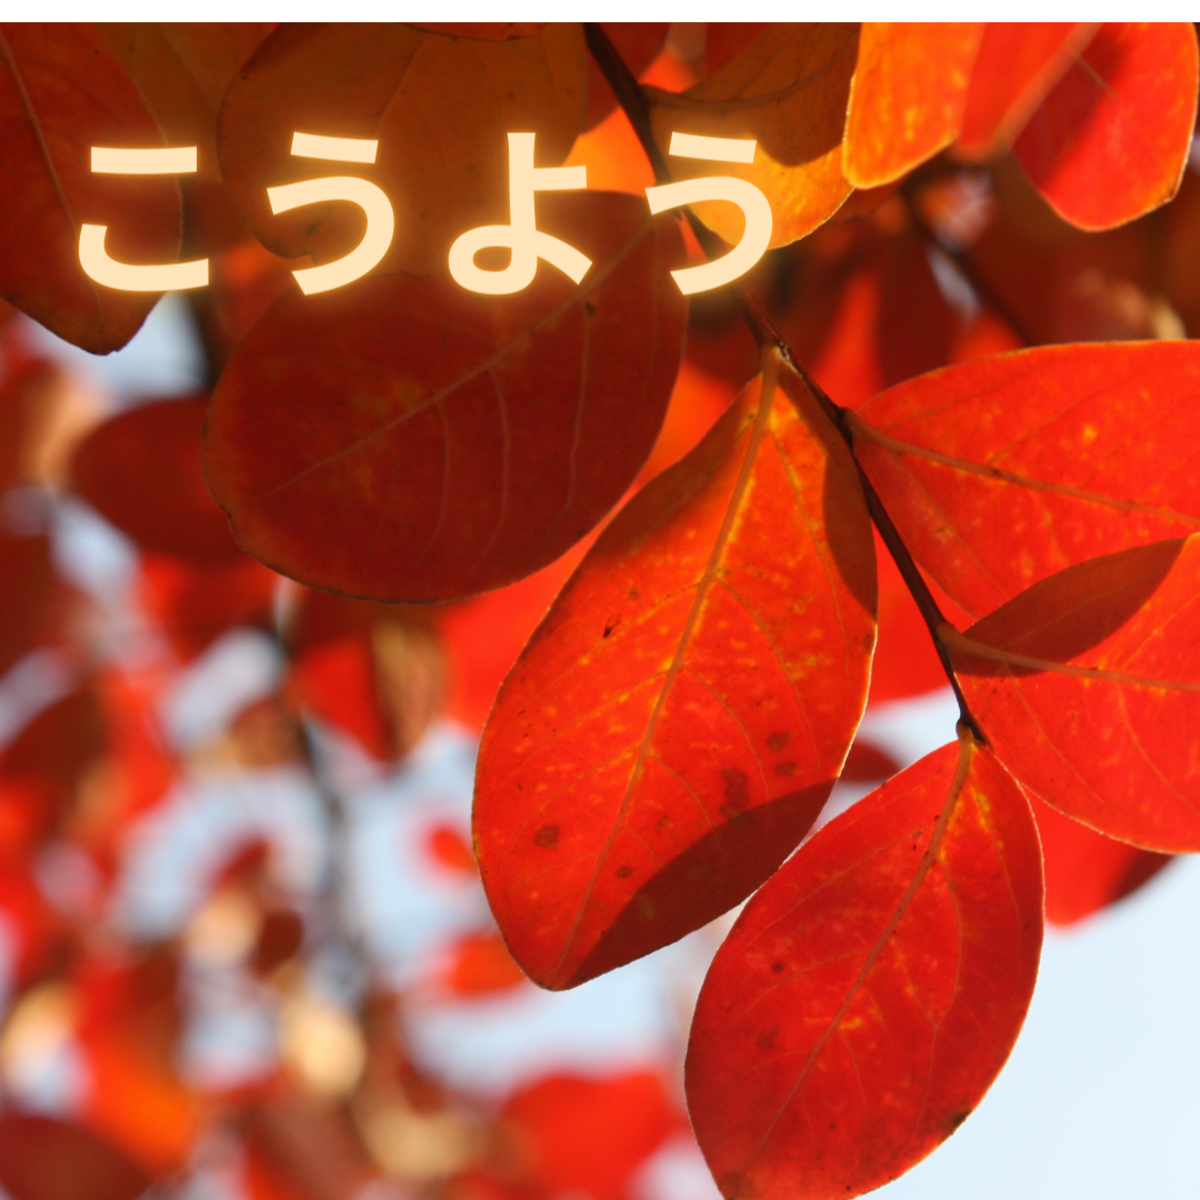 Kouyou or leaves changing color in fall.